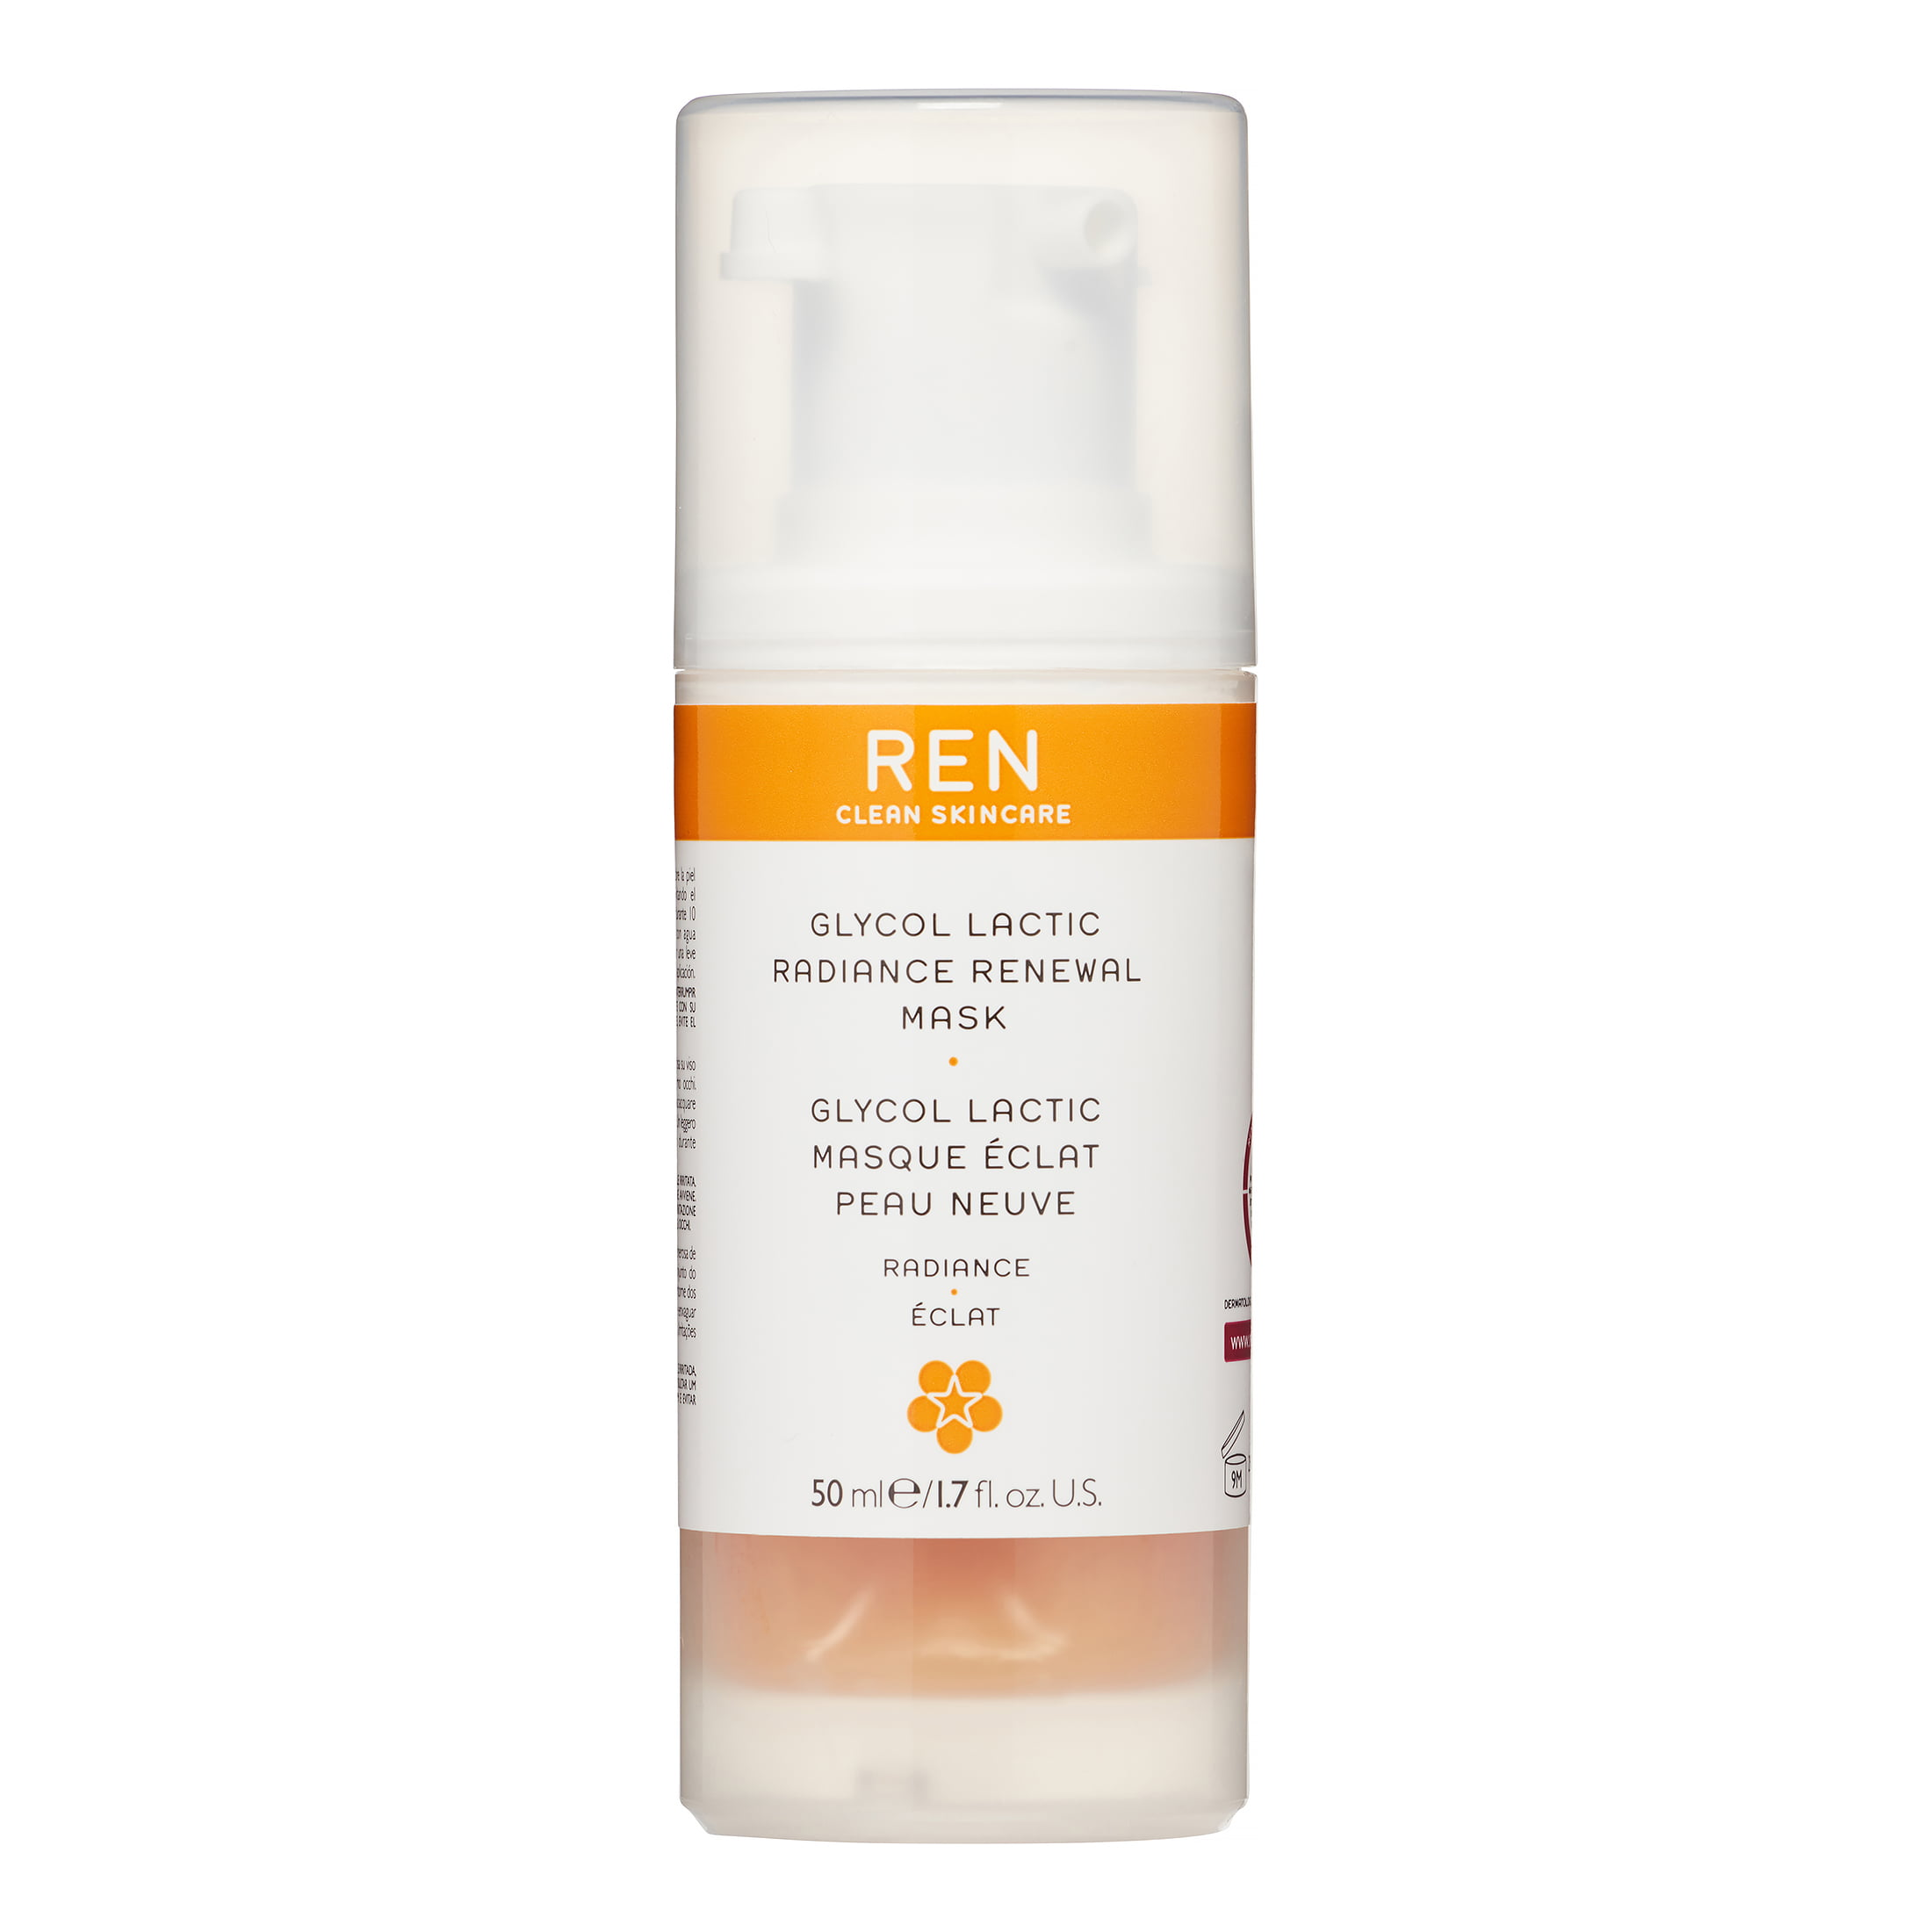 REN Skincare - Glycol Lactic Radiance Renewal Mask